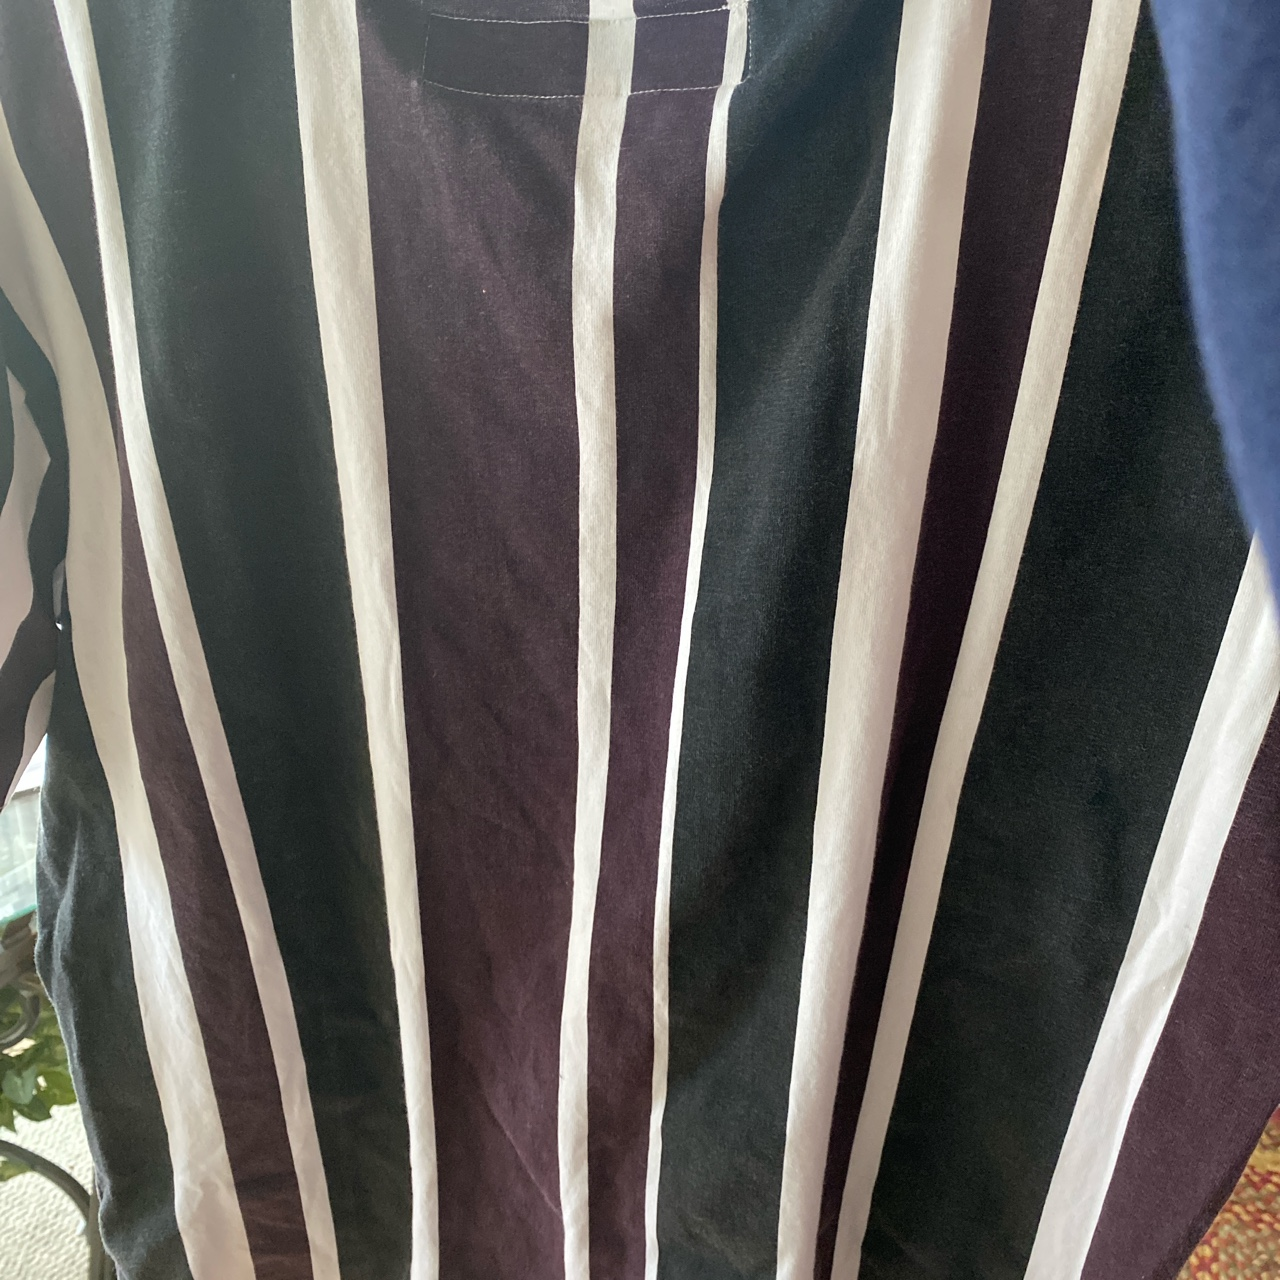 Product Image 4 - Guess Redford striped shirt BRAND